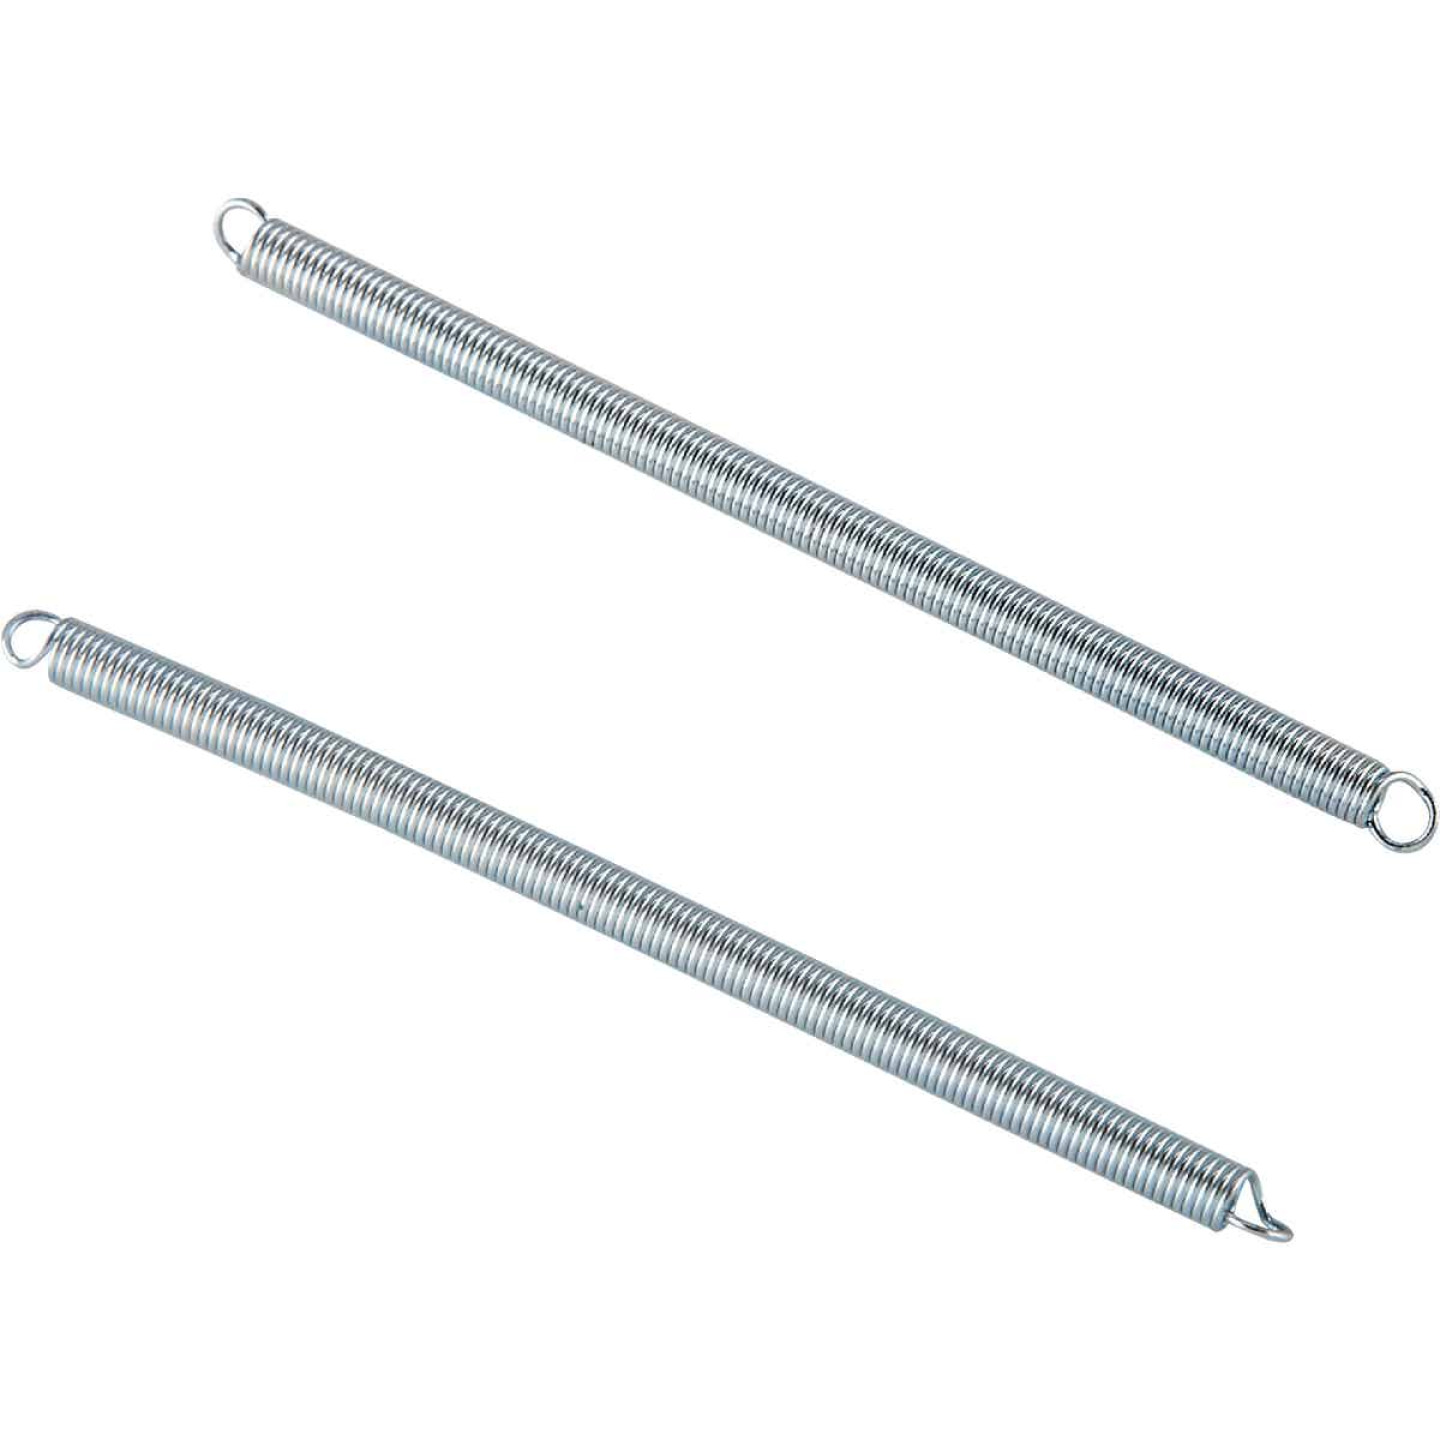 Century Spring 2-1/2 In. x 5/8 In. Extension Spring (2 Count) Image 1